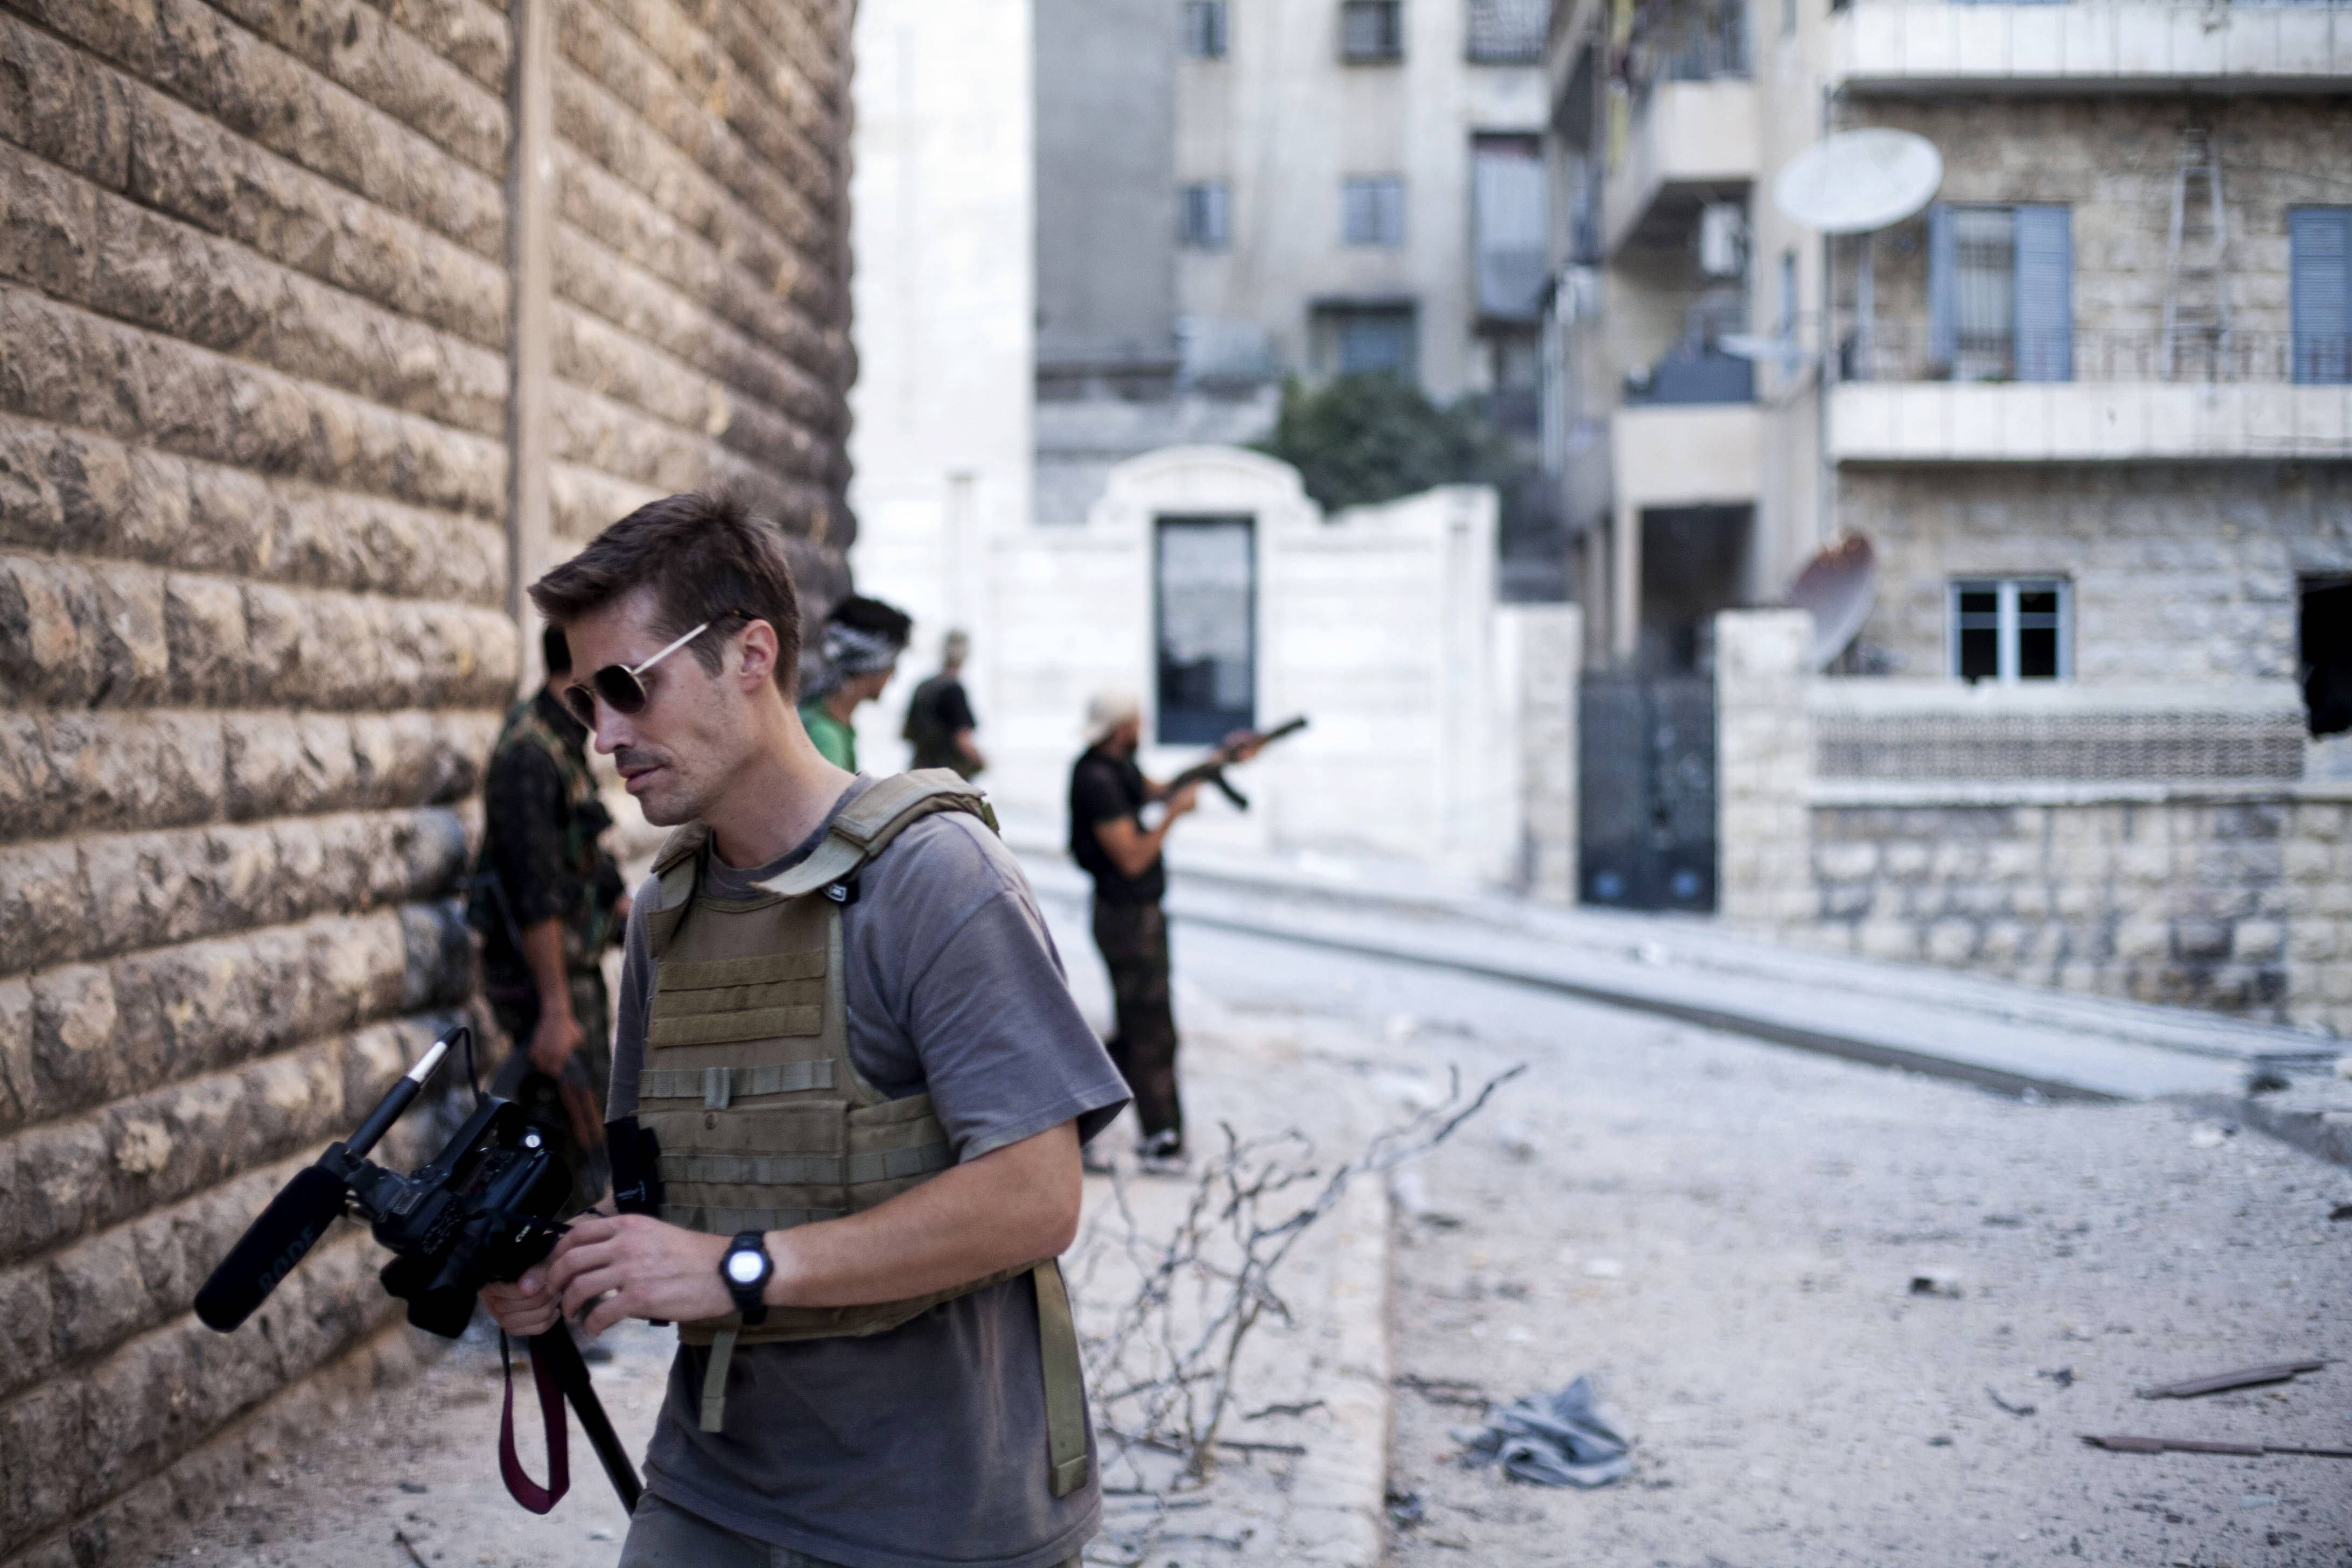 Associated Press/freejamesfoley.org, 2012Journalist James Foley in Aleppo, Syria. In a horrifying act of revenge for U.S. airstrikes in northern Iraq, militants with the Islamic State extremist group have beheaded Foley. The journalist was embedded with members of the Indiana Guard's 76th Infantry Brigade Combat Team in Iraq in 2008.